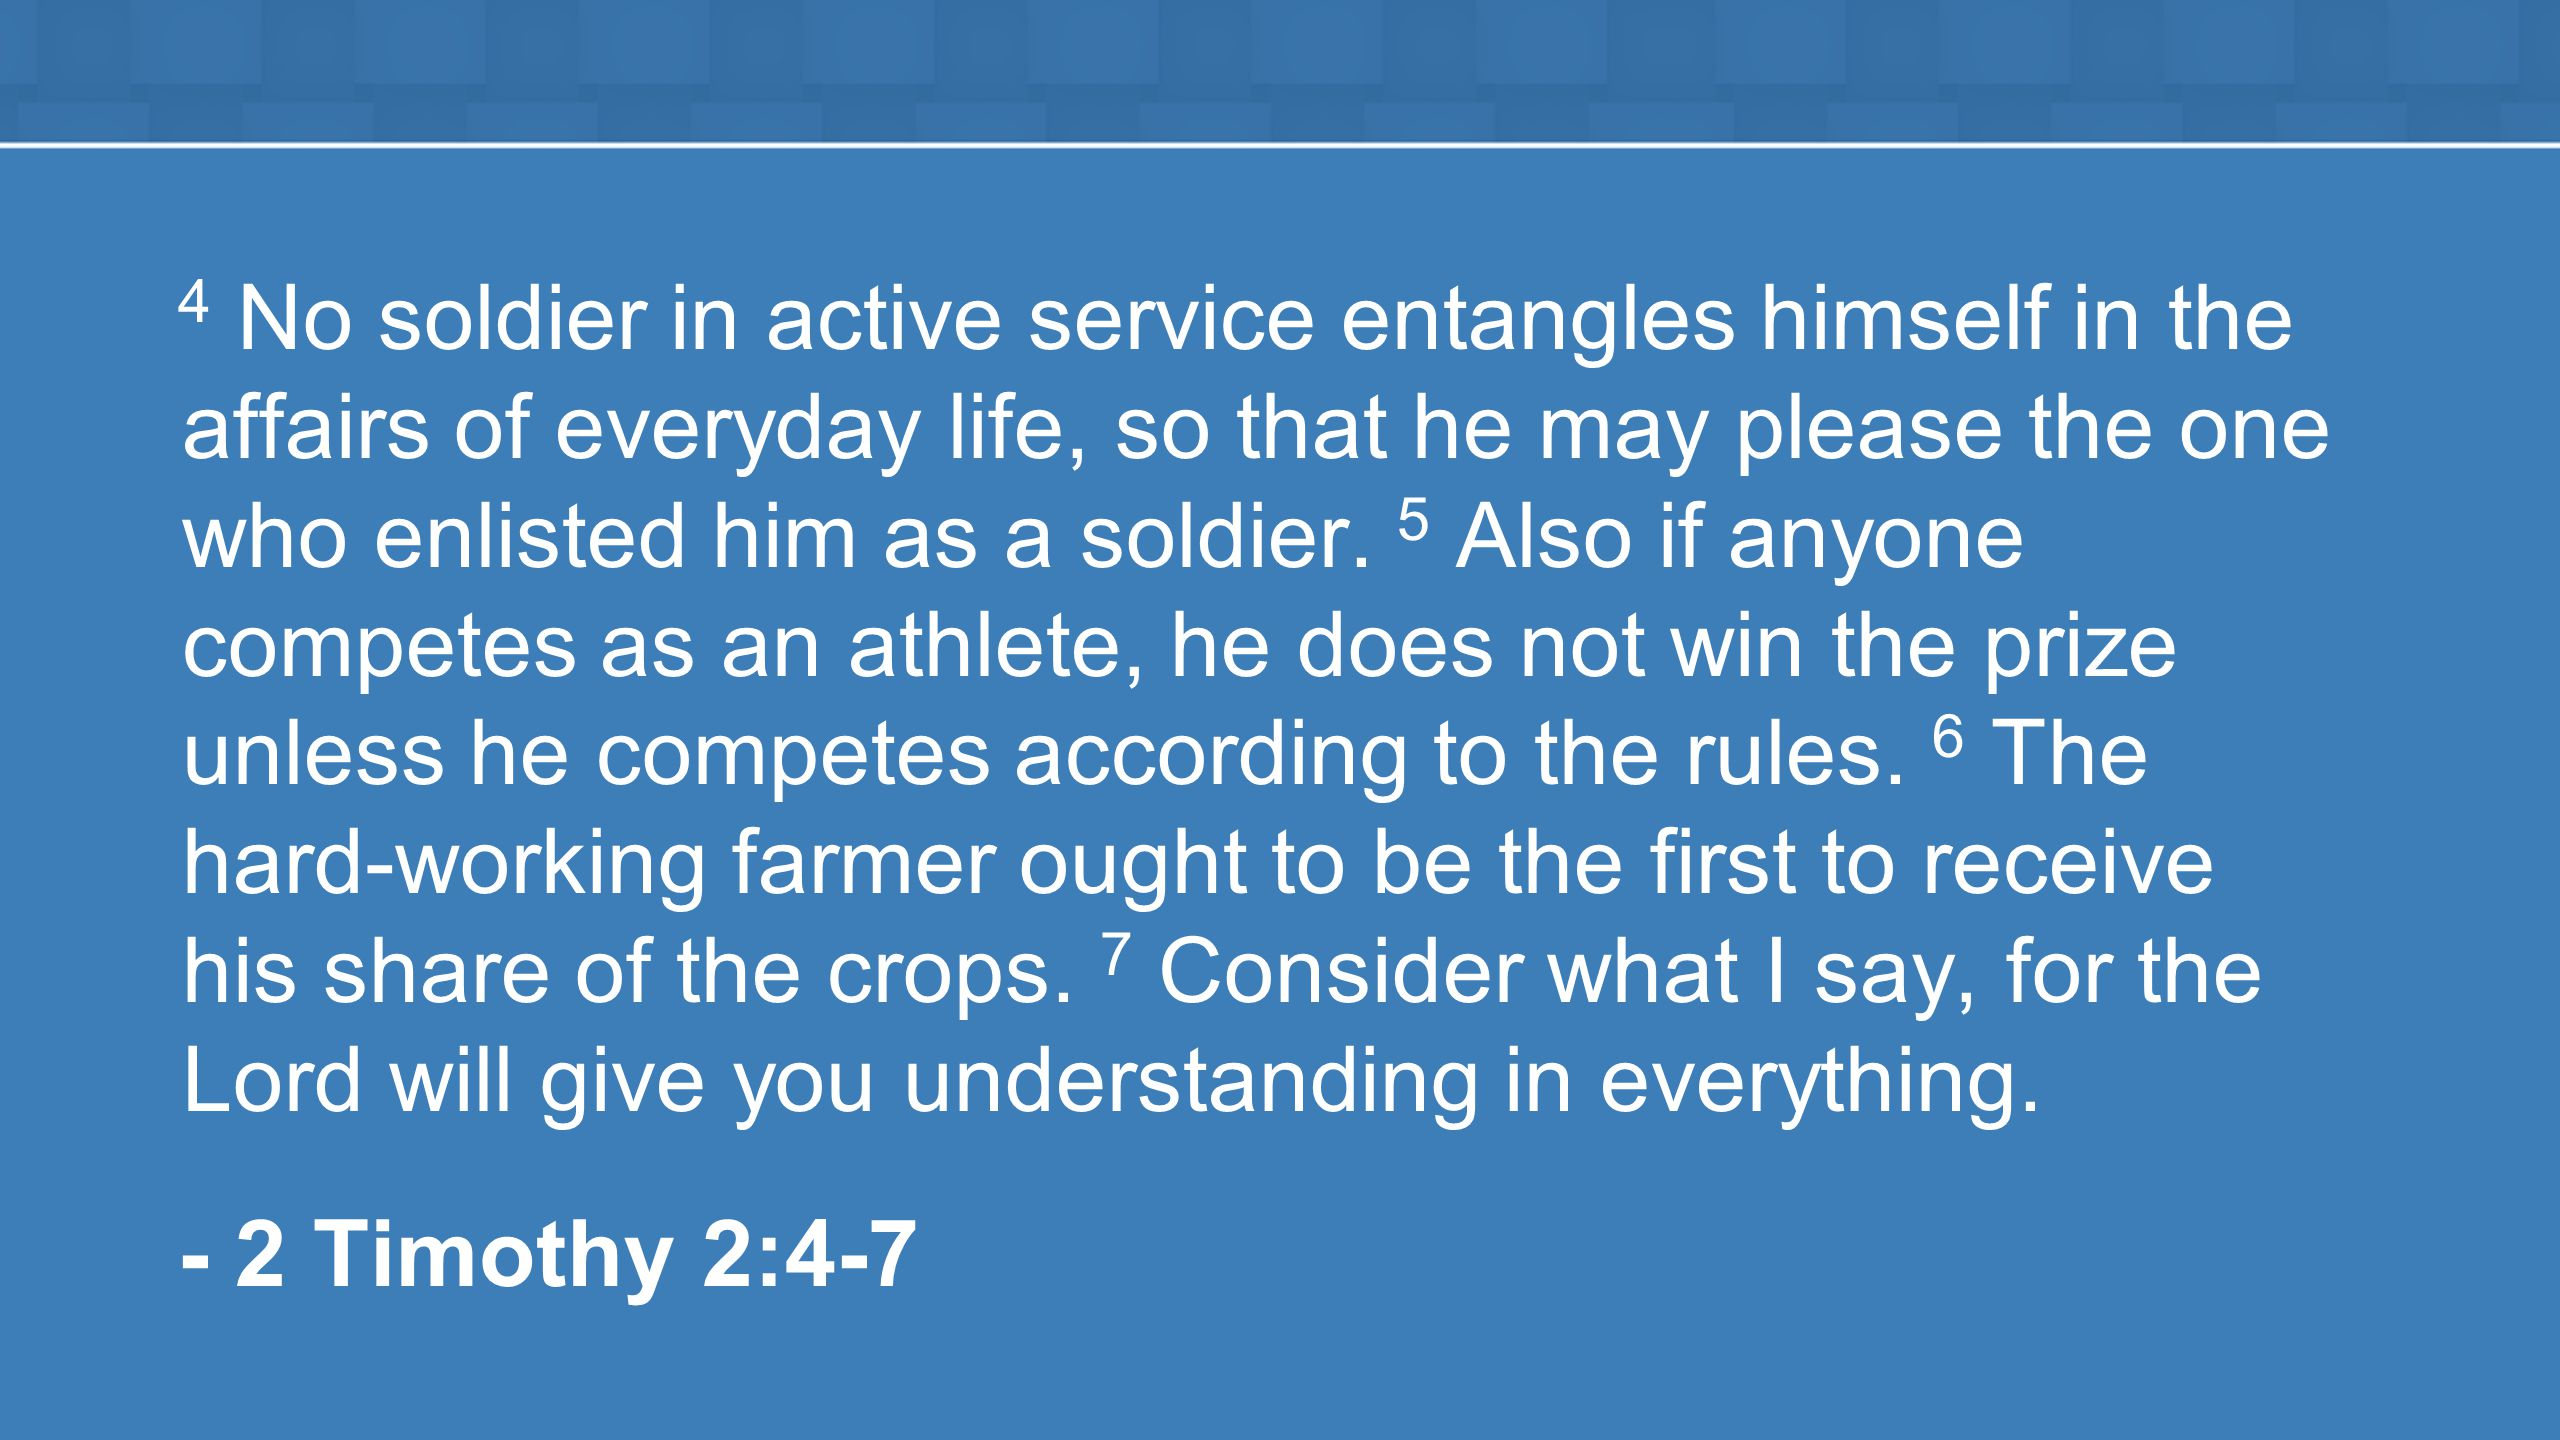 4 No soldier in active service entangles himself in the affairs of everyday life, so that he may please the one who enlisted him as a soldier.